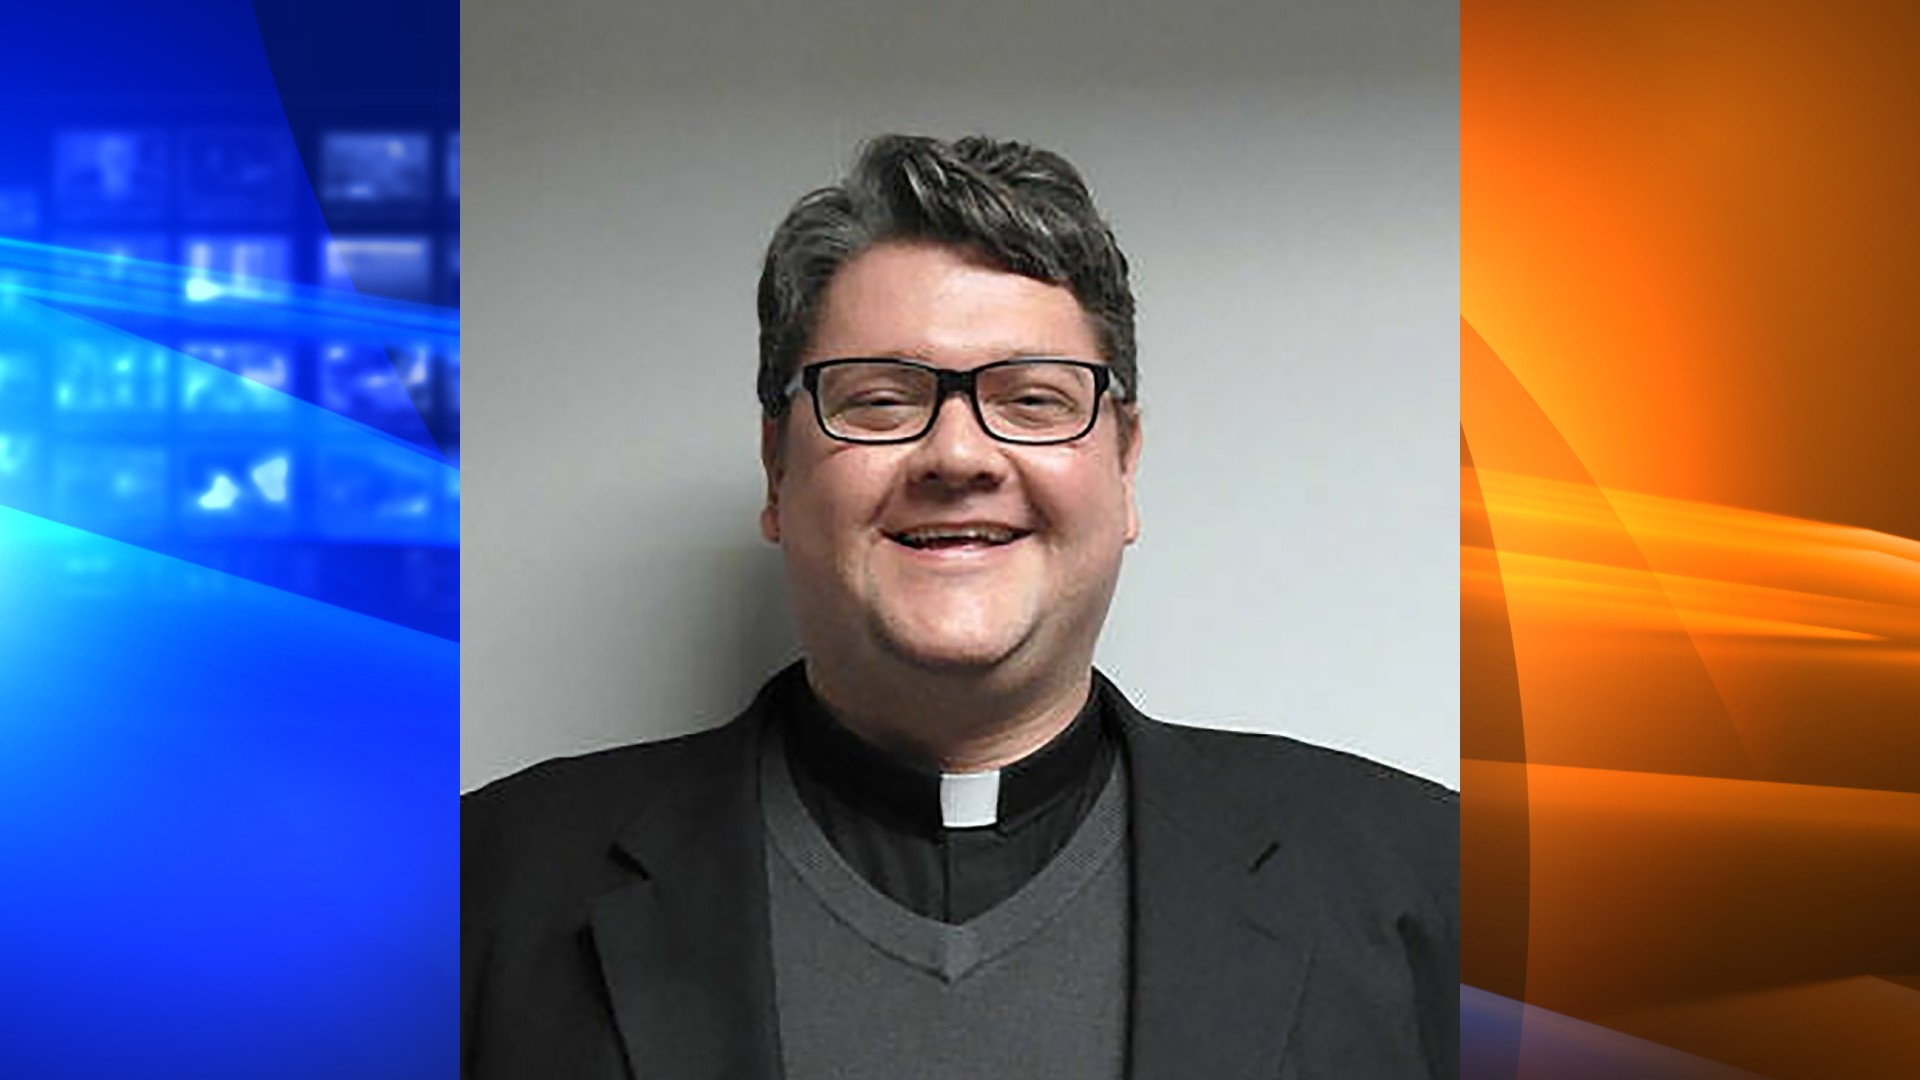 Robert D. McWilliams (Catholic Diocese of Cleveland via CNN)